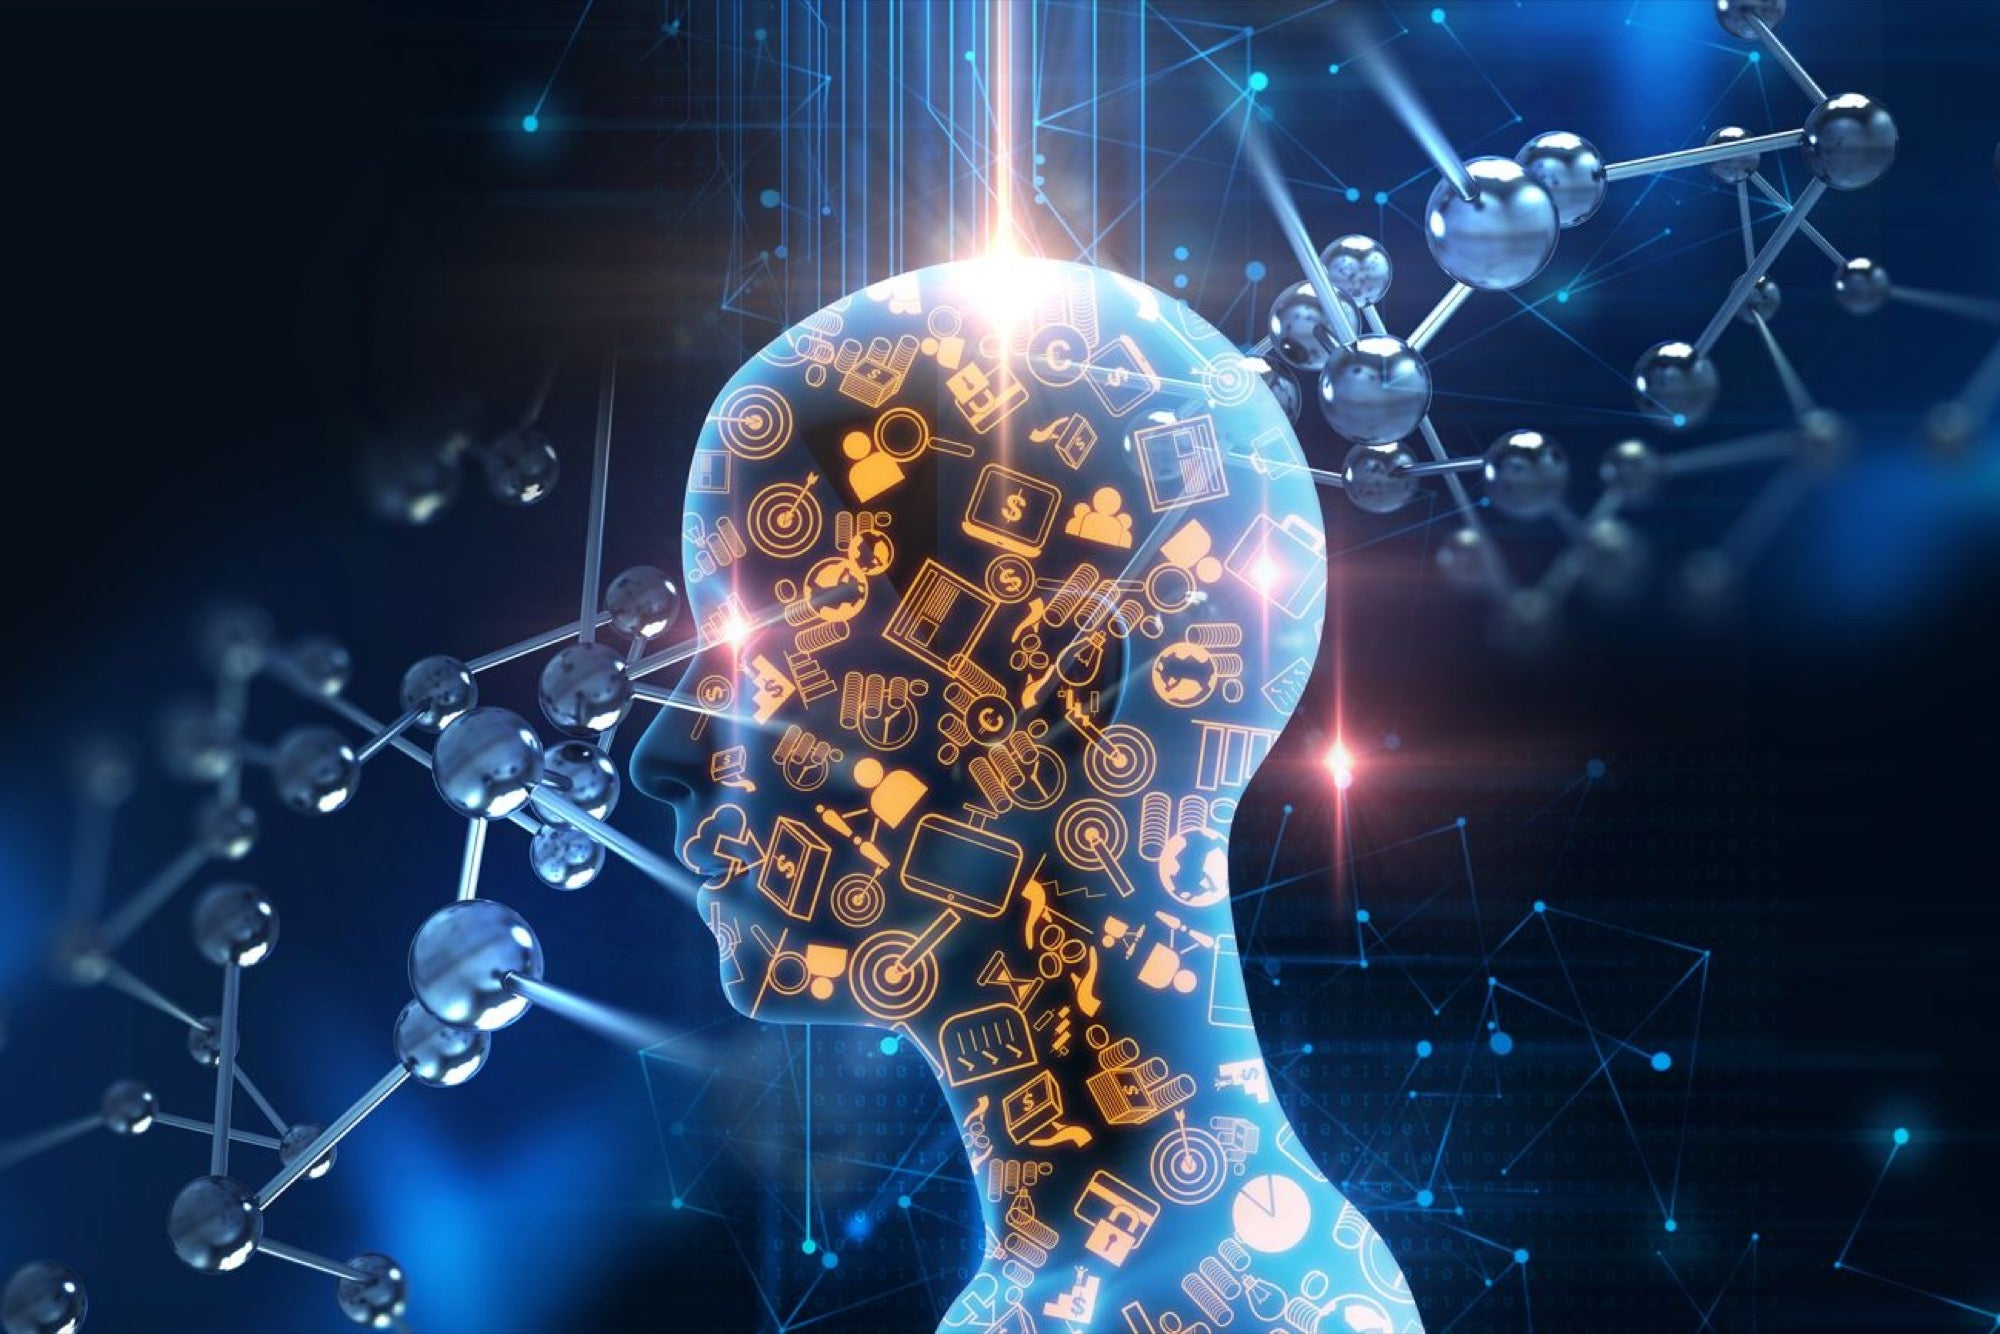 Europe Artificial Intelligence Market 2021-26, Size, Analysis, Trends, Growth, Forecast and Research Report